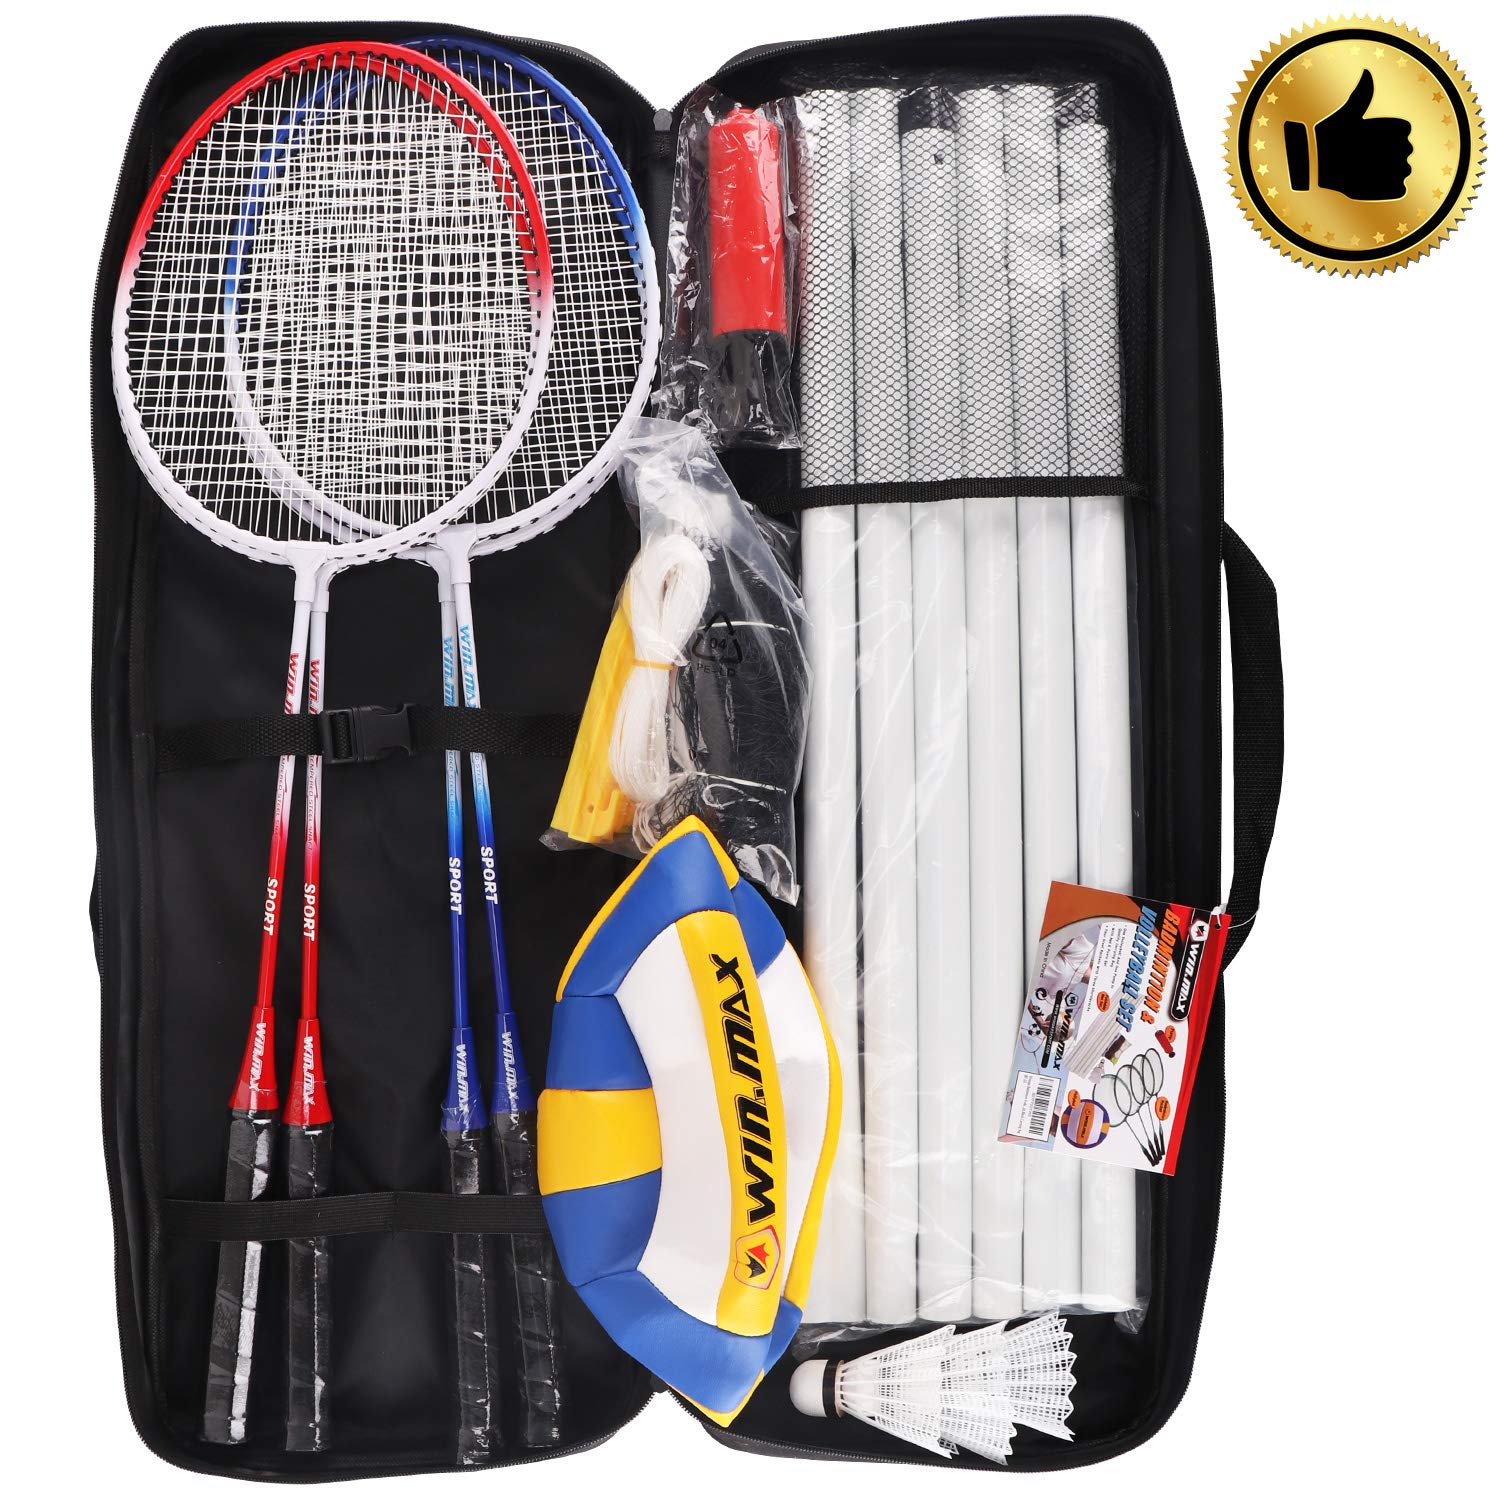 Winmax Badminton Volleyball Combo Set